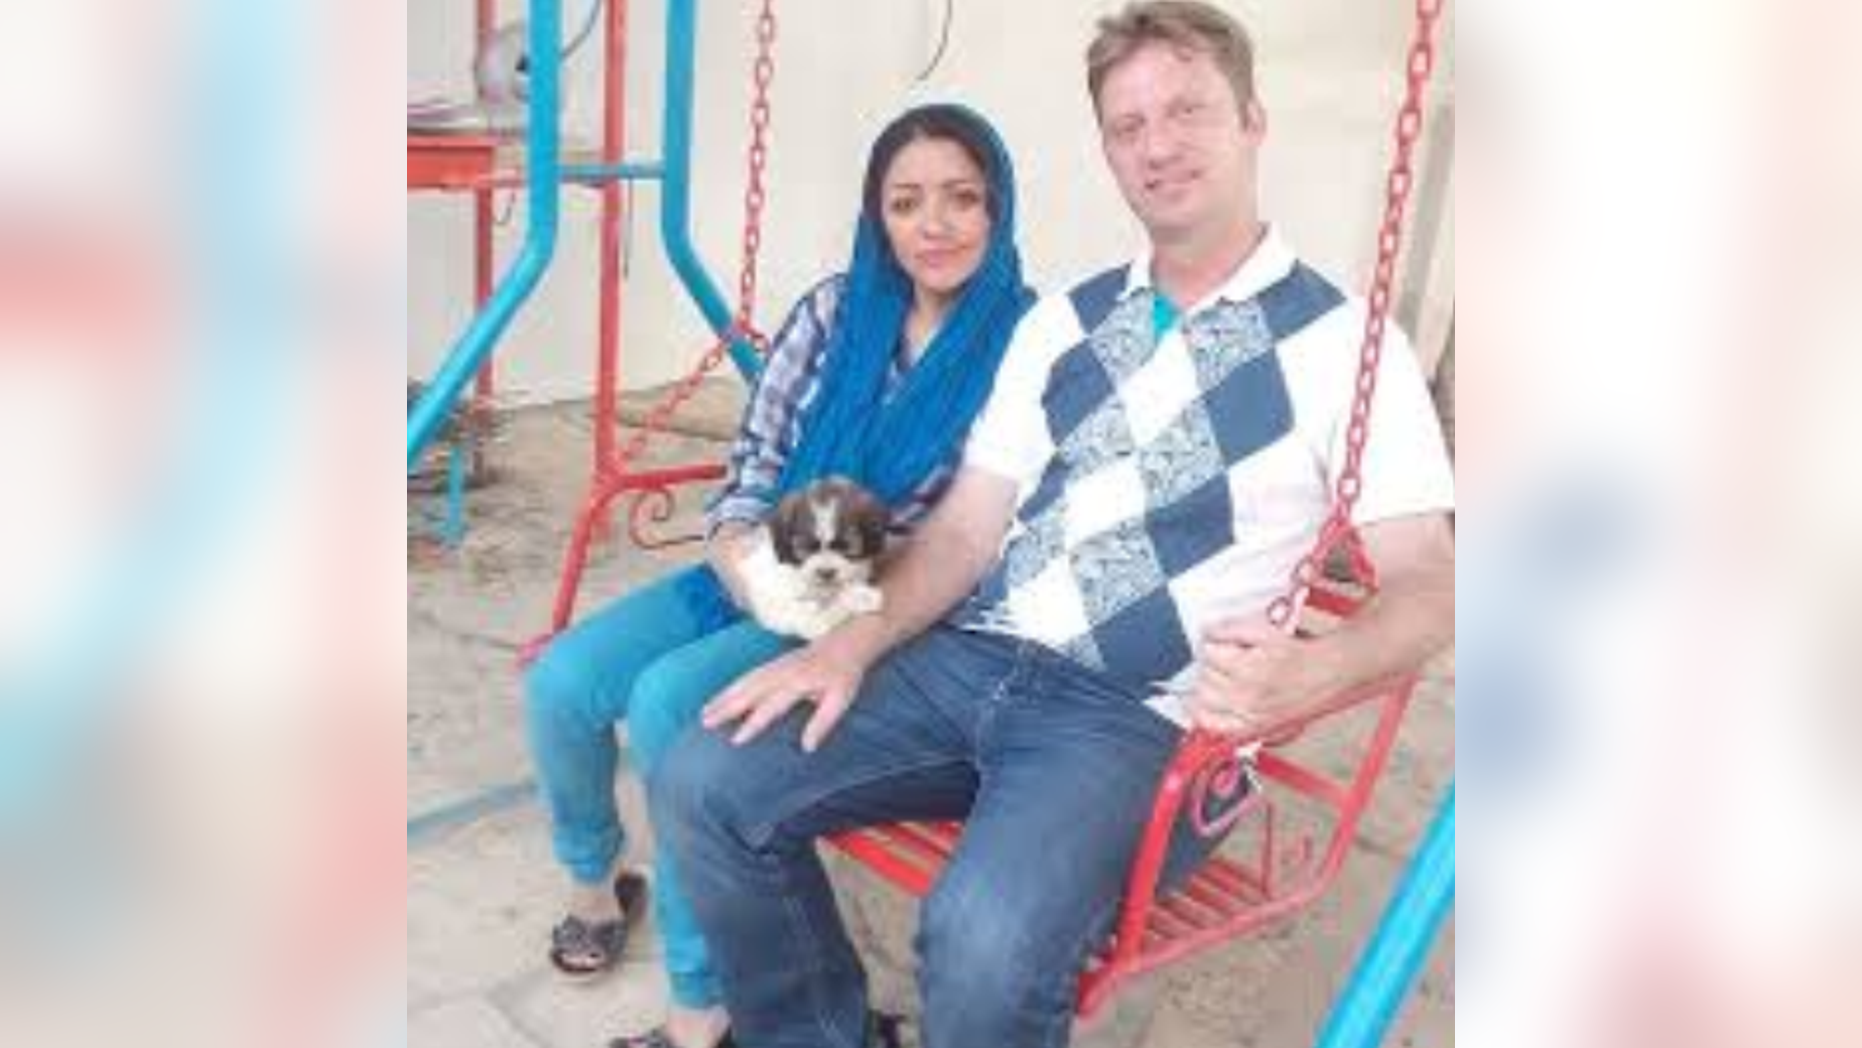 American Navy veteran Michael R. White, 46, was detained in Iran after visiting his Iranian girlfriend, his mother said.